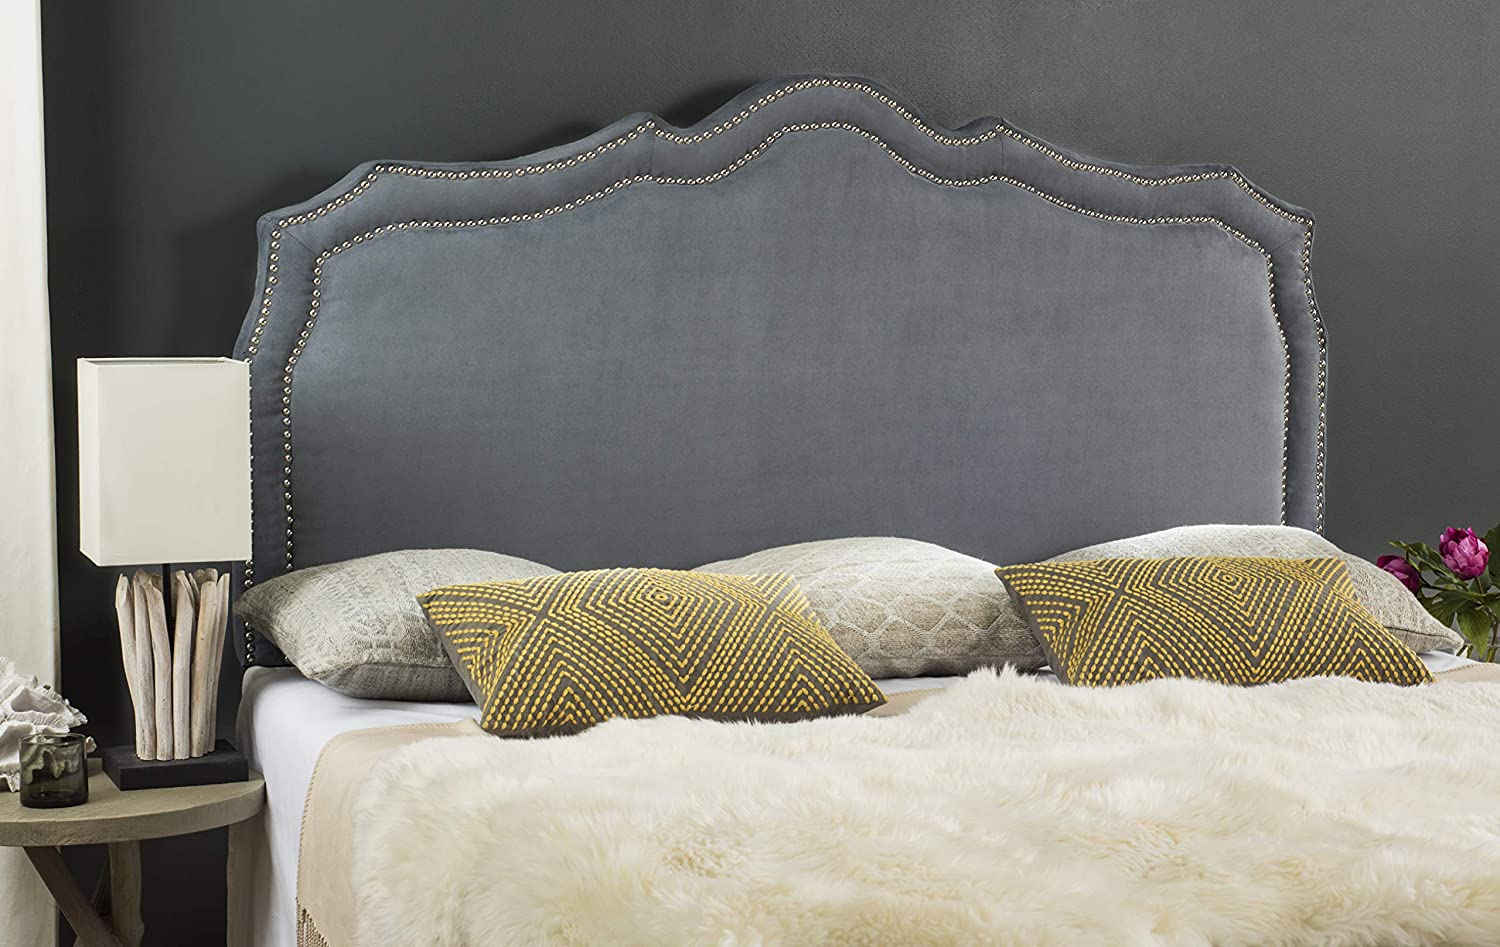 Safavieh Mercer Collection Skyler Grey Silver Nailhead Headboard Queen